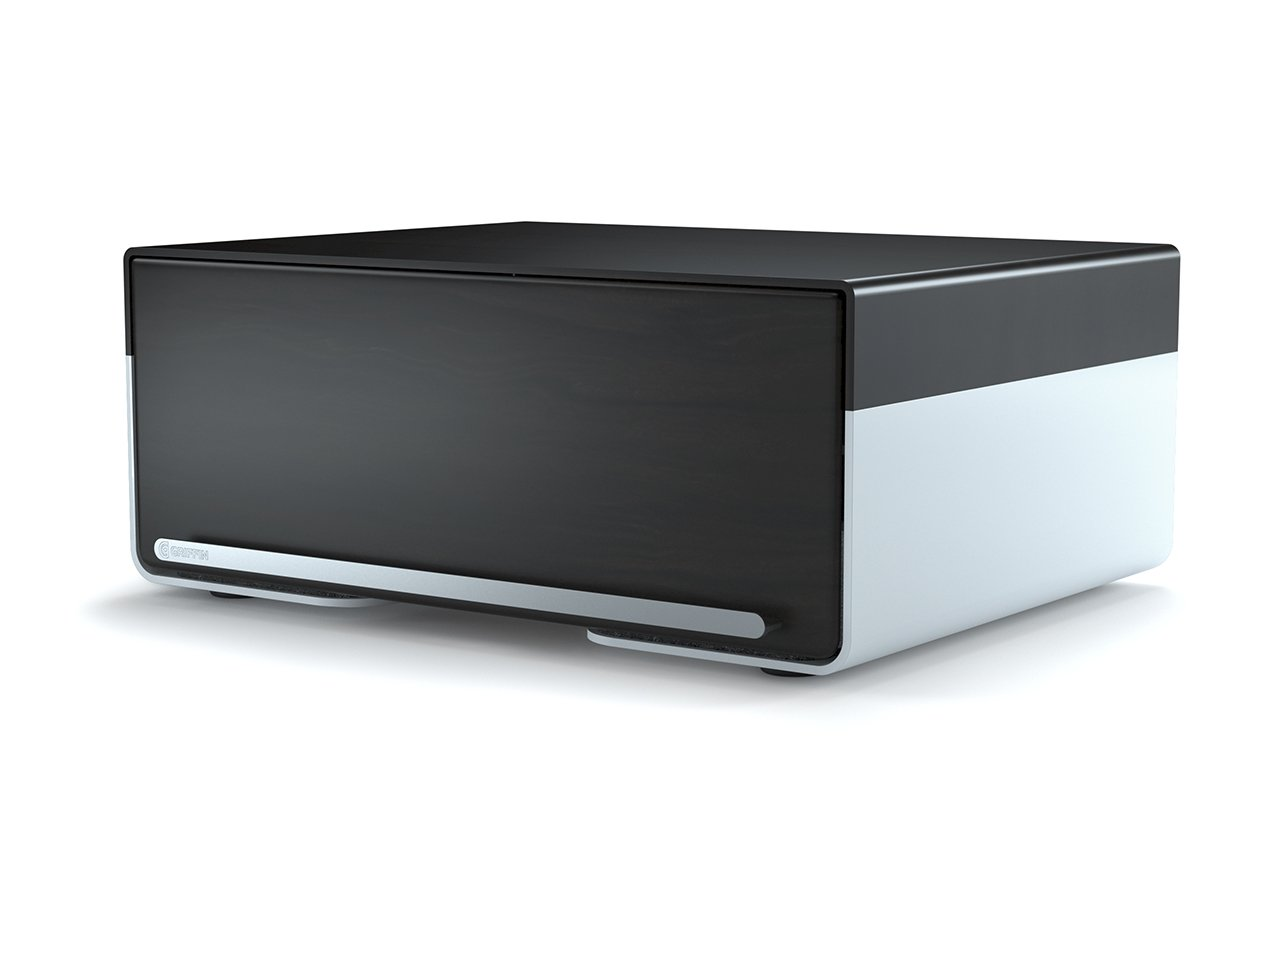 Griffin Cove USB 5- Port Charging Station, Dark Ebony - An elegant place to store and charge everything.